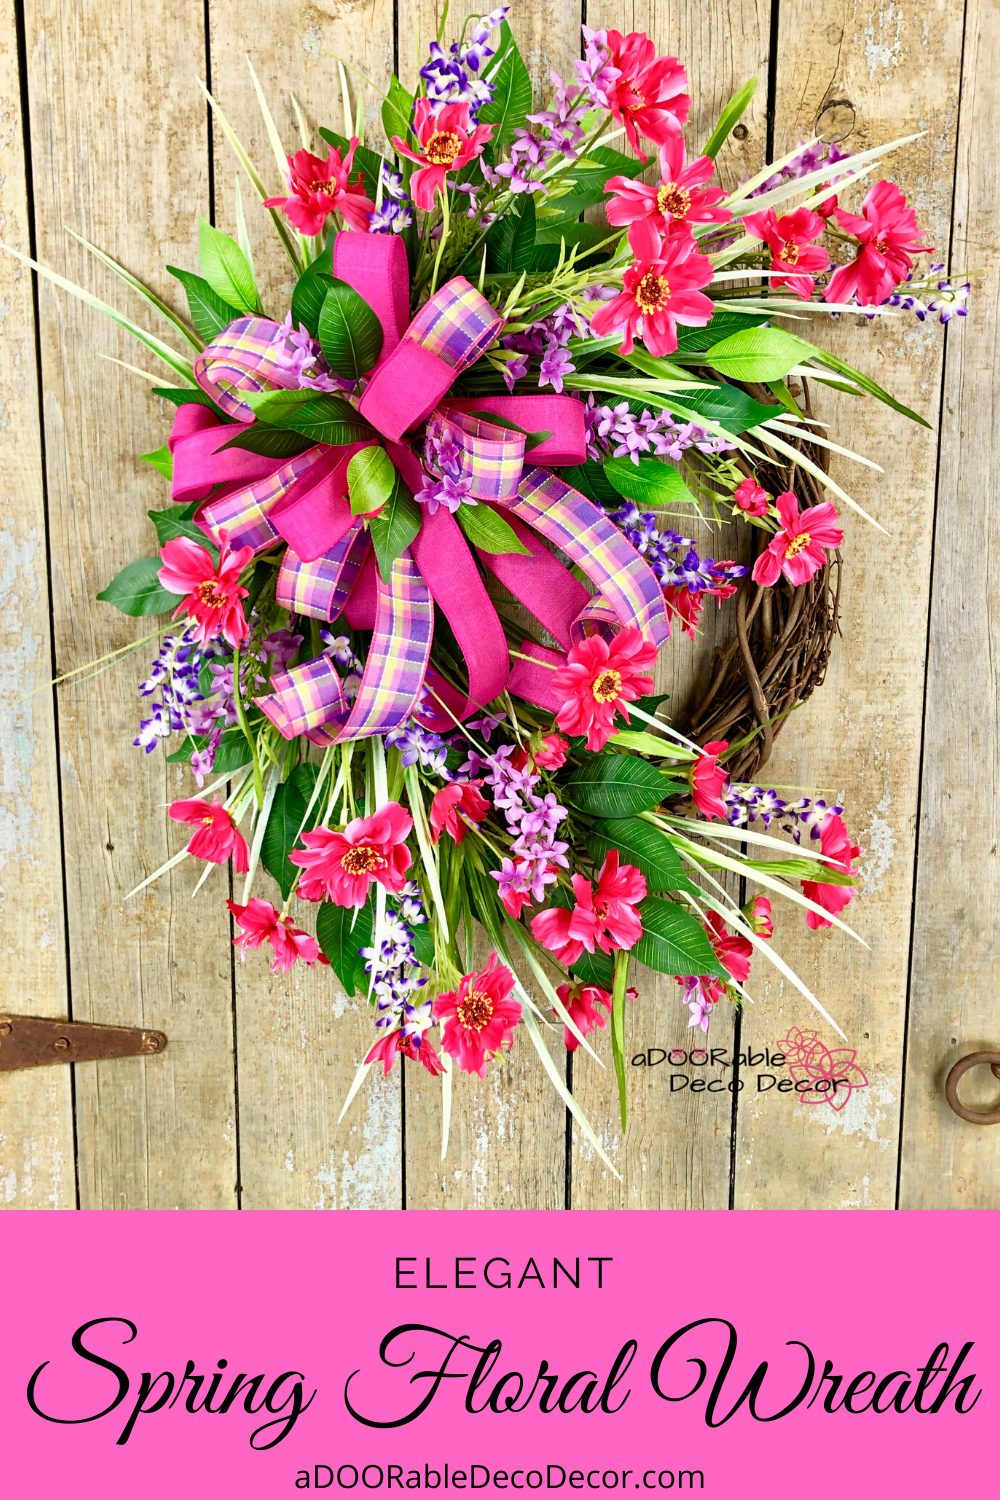 Photo of Spring floral wreath